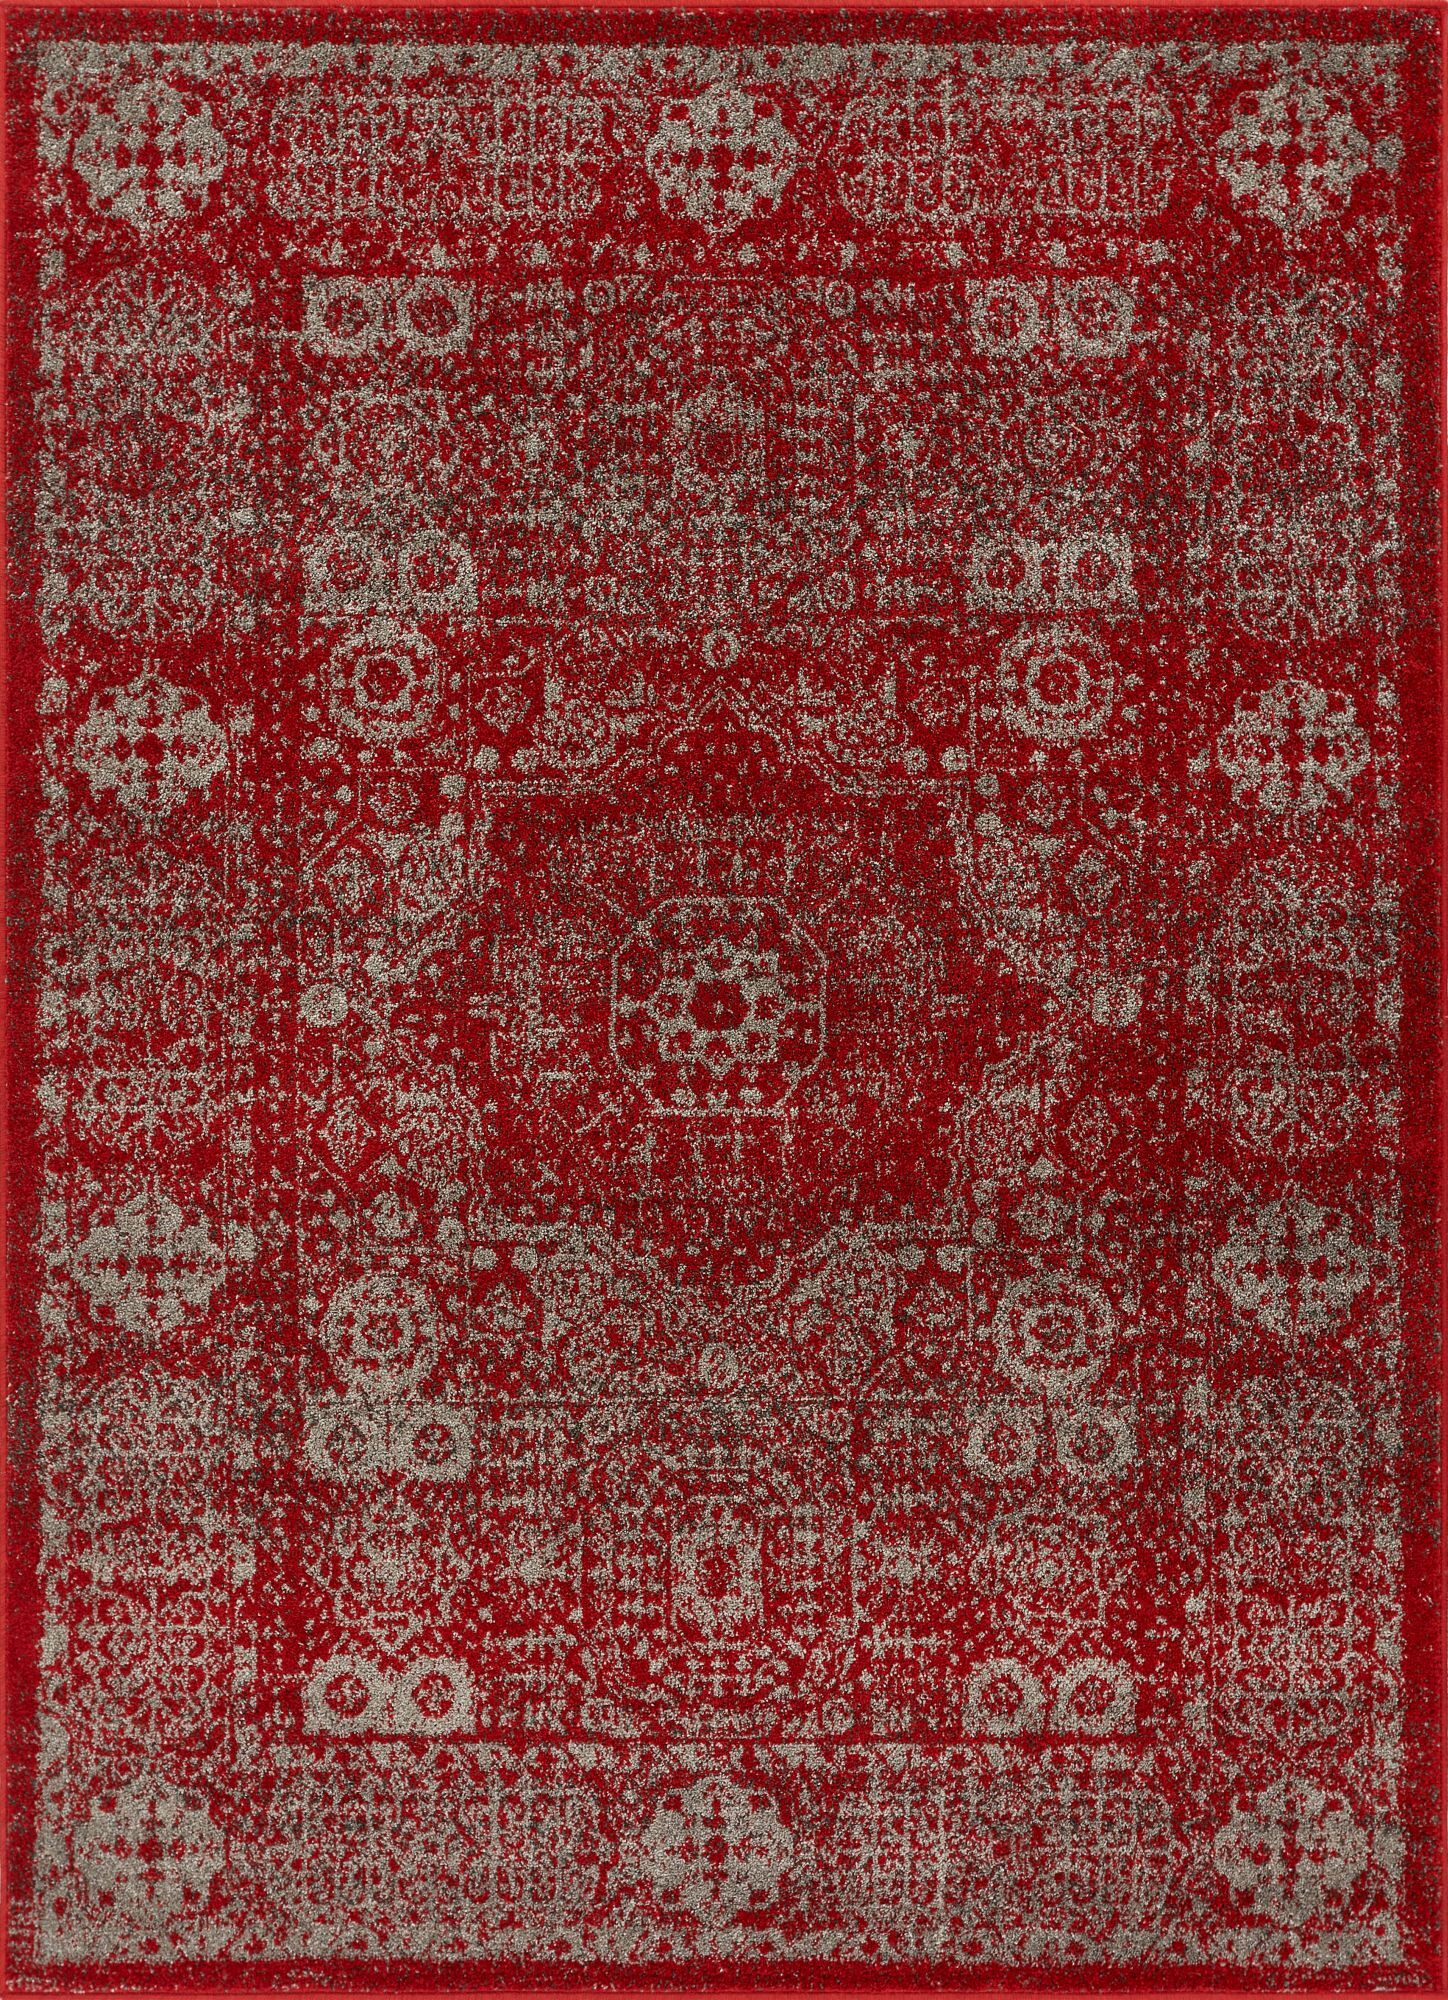 Corsican Red Area Rug Rug Size: Rectangle 7'10